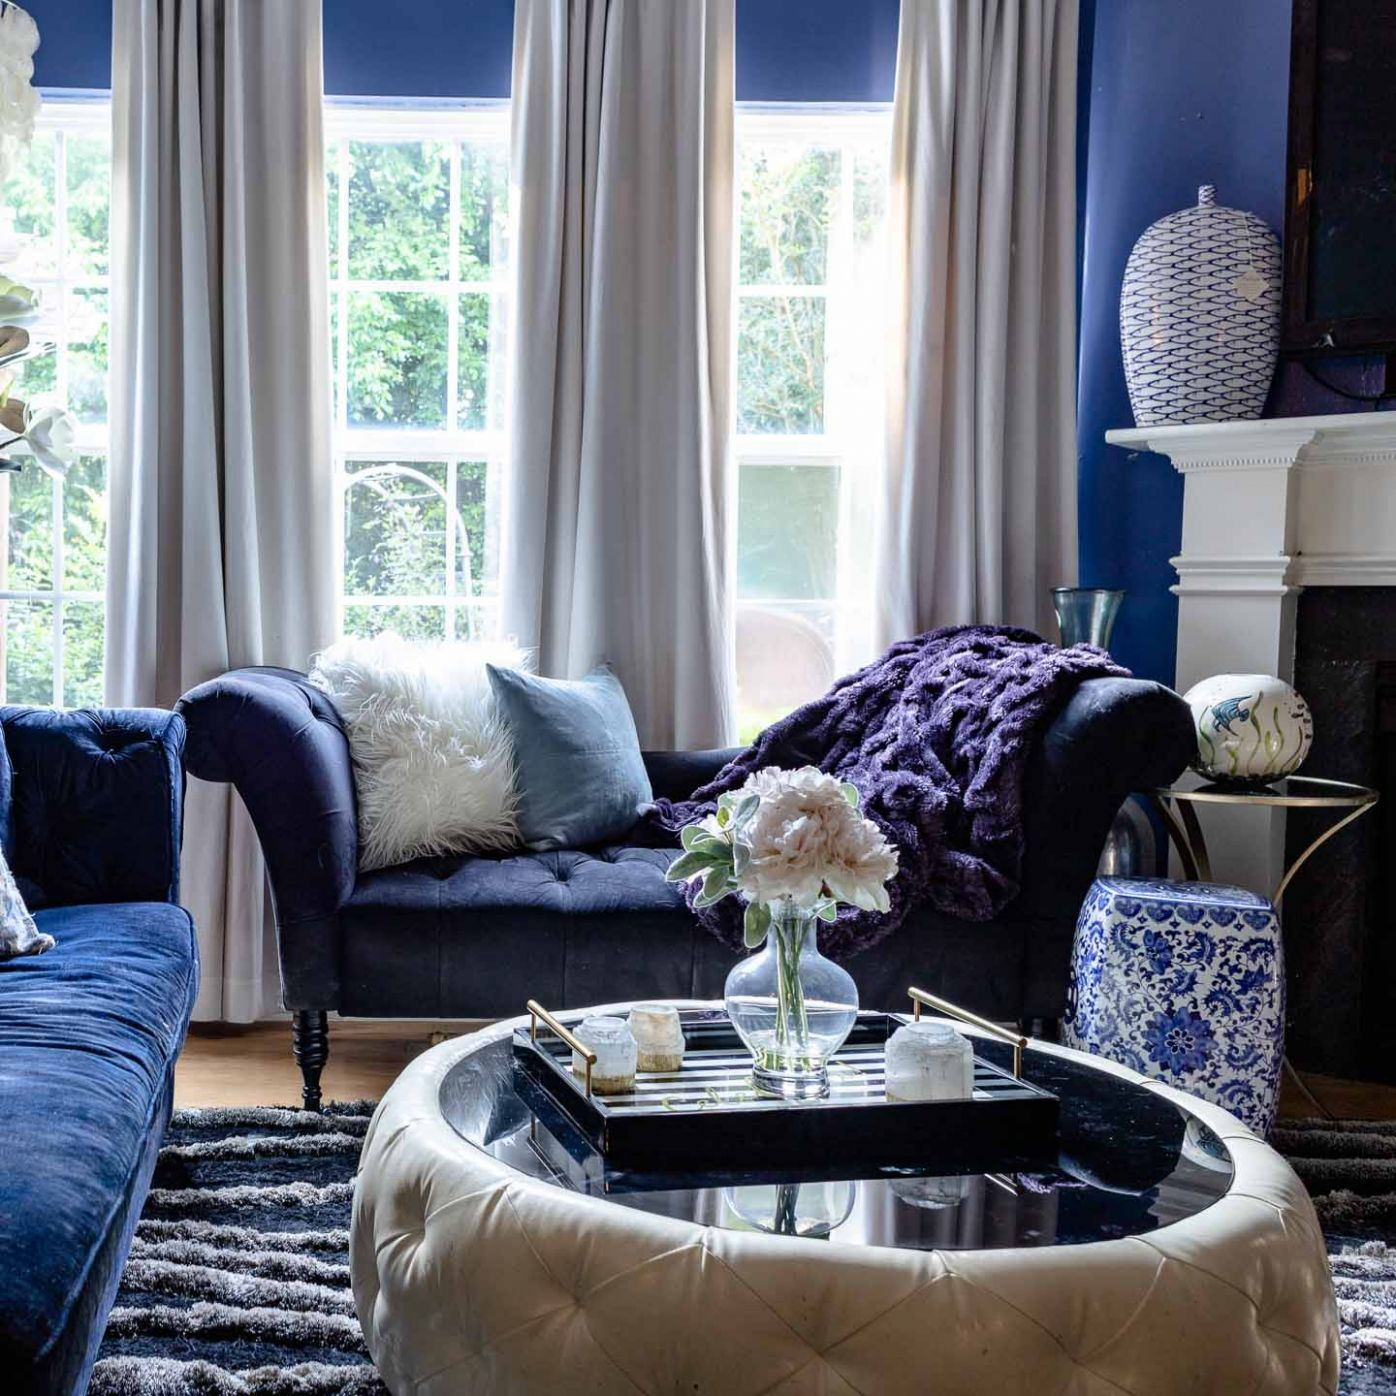 Blue and White Decorating Ideas: 9 Ways To Decorate With Blue and ..